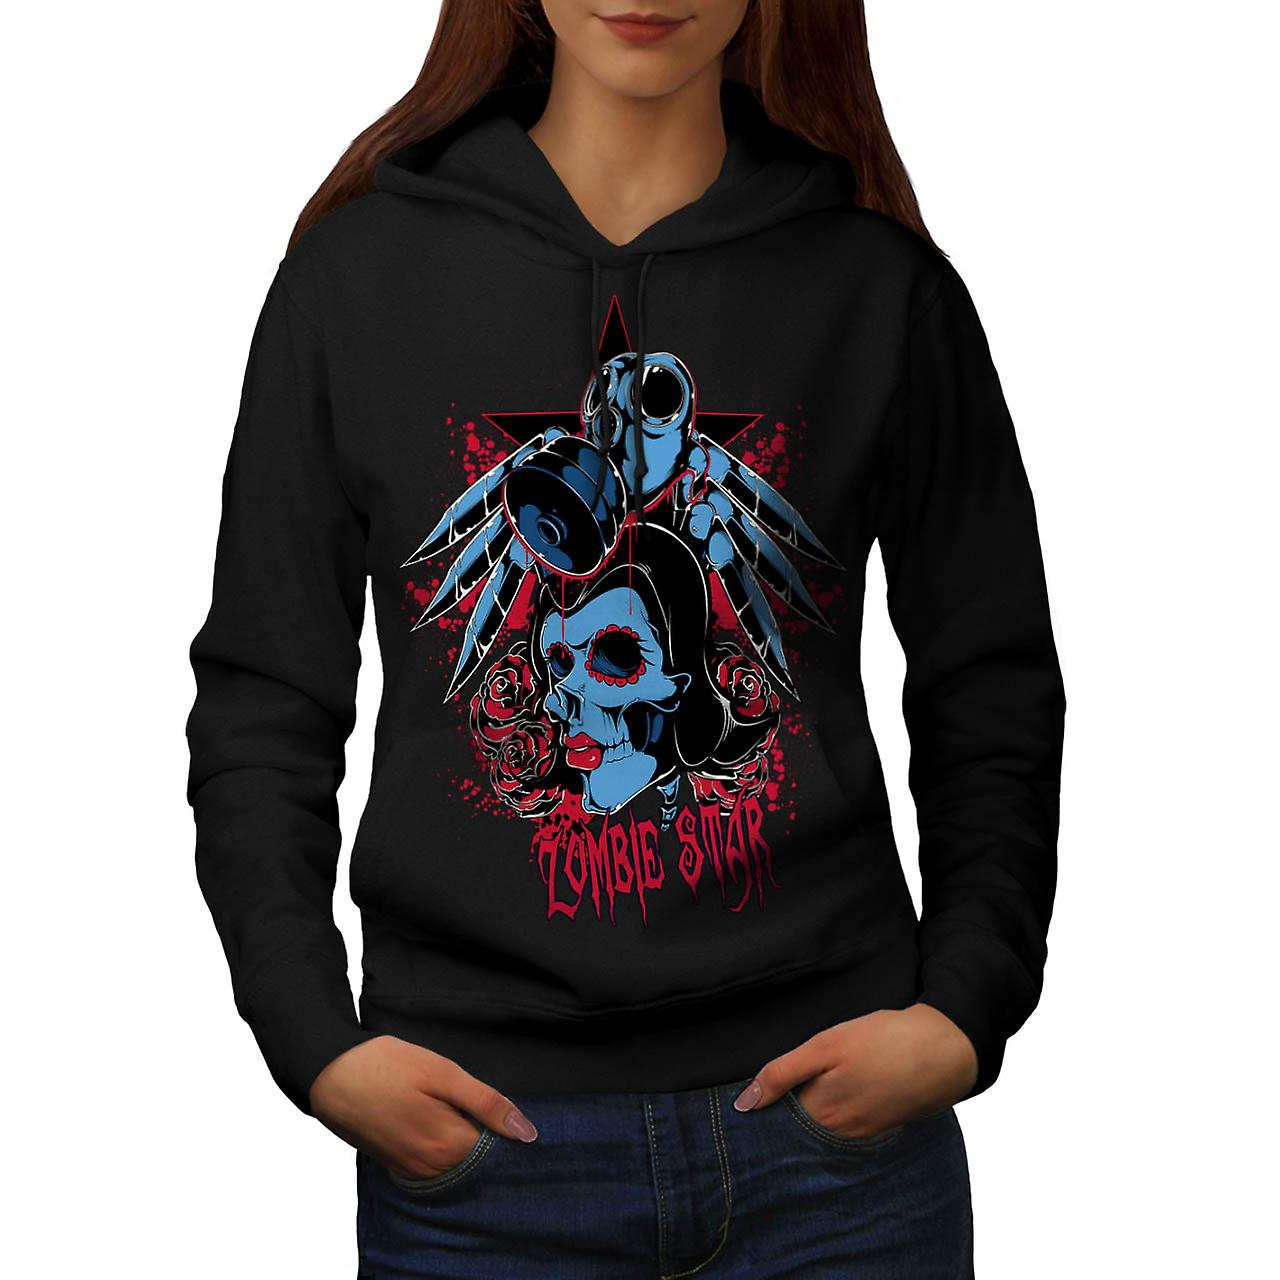 Evil Zombie Star Rise Nightmare Women Black Hoodie | Wellcoda